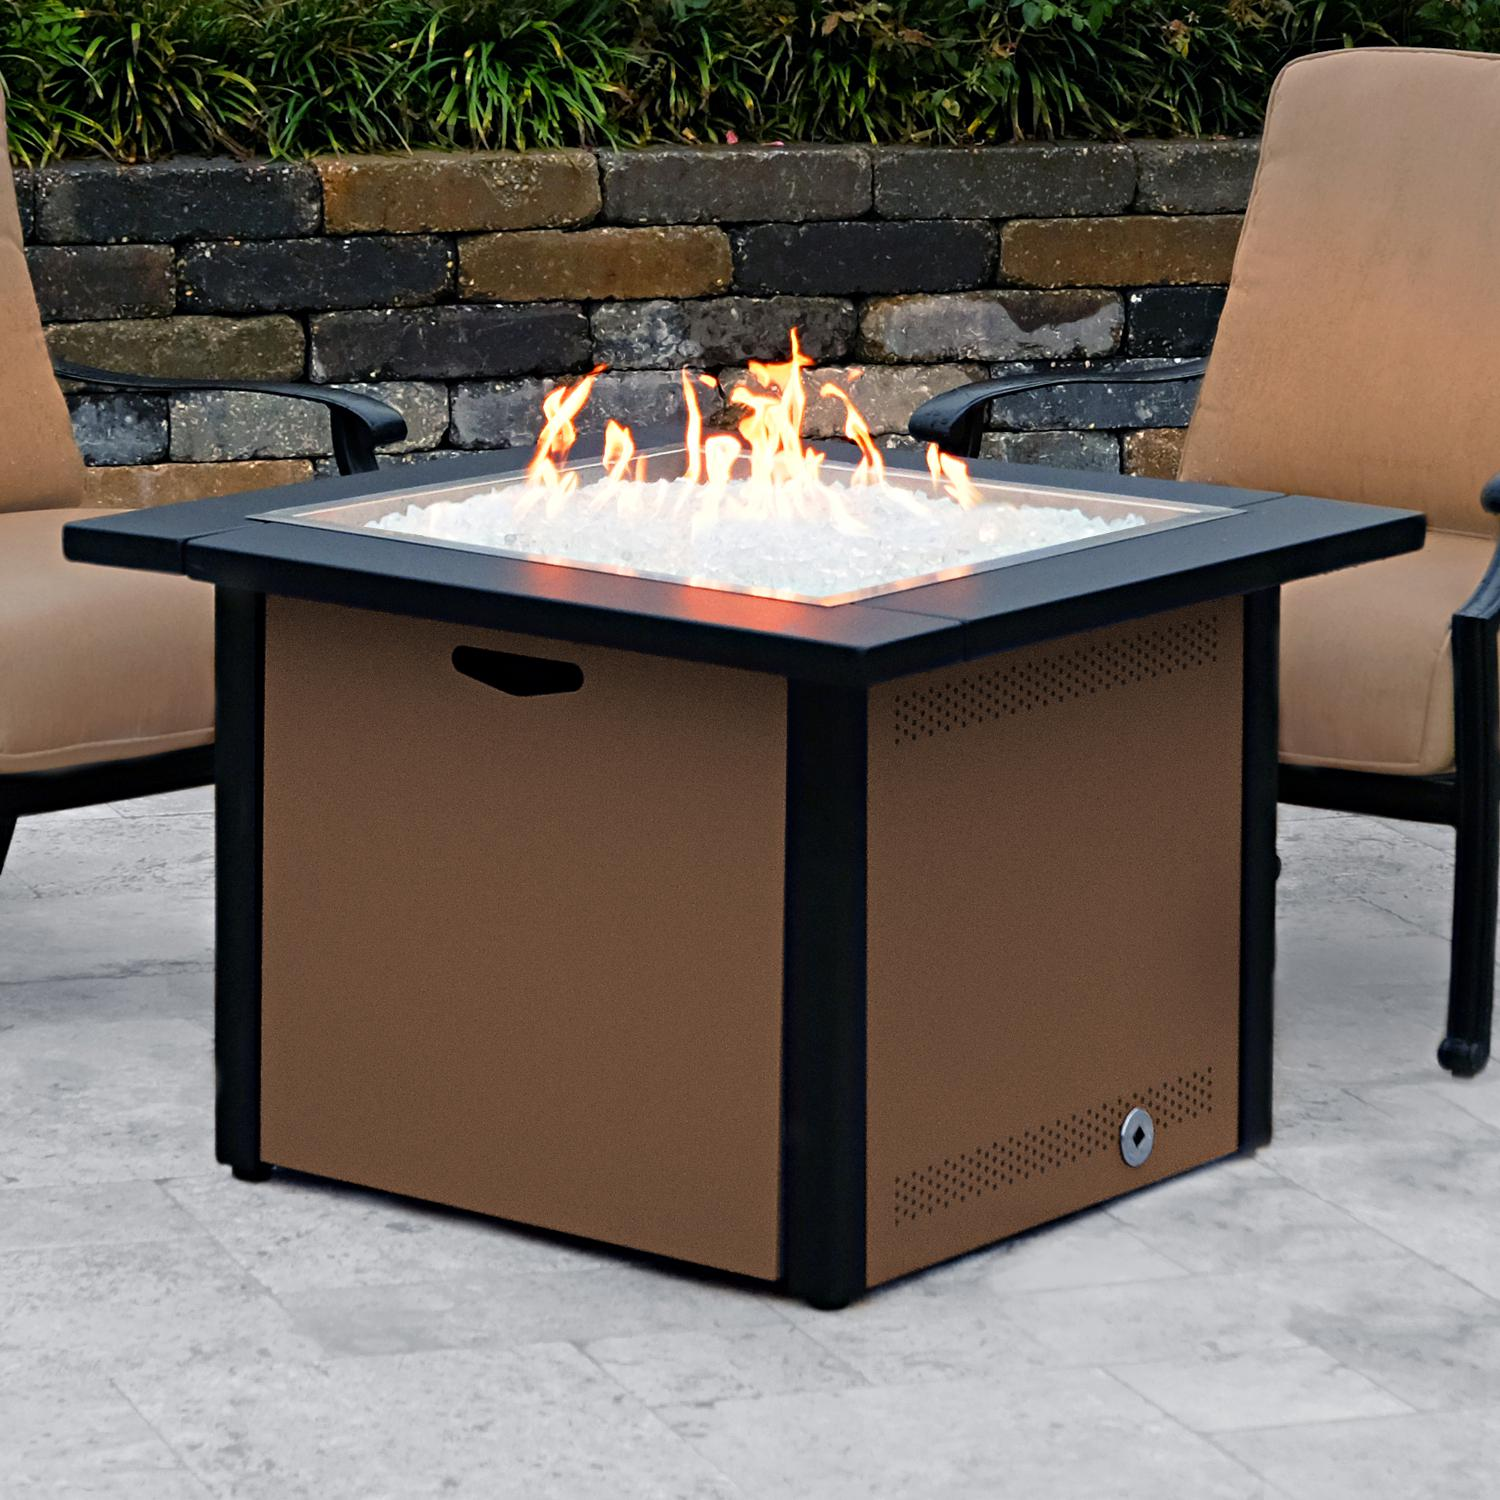 Lakeview 36 Square Propane Gas Fire Pit Table W 24 Pan And Burner Speckled Walnut Ch 36fp A Lp Sw Products In 2019 Gas Fire Pit Table Fire Pit Tabl